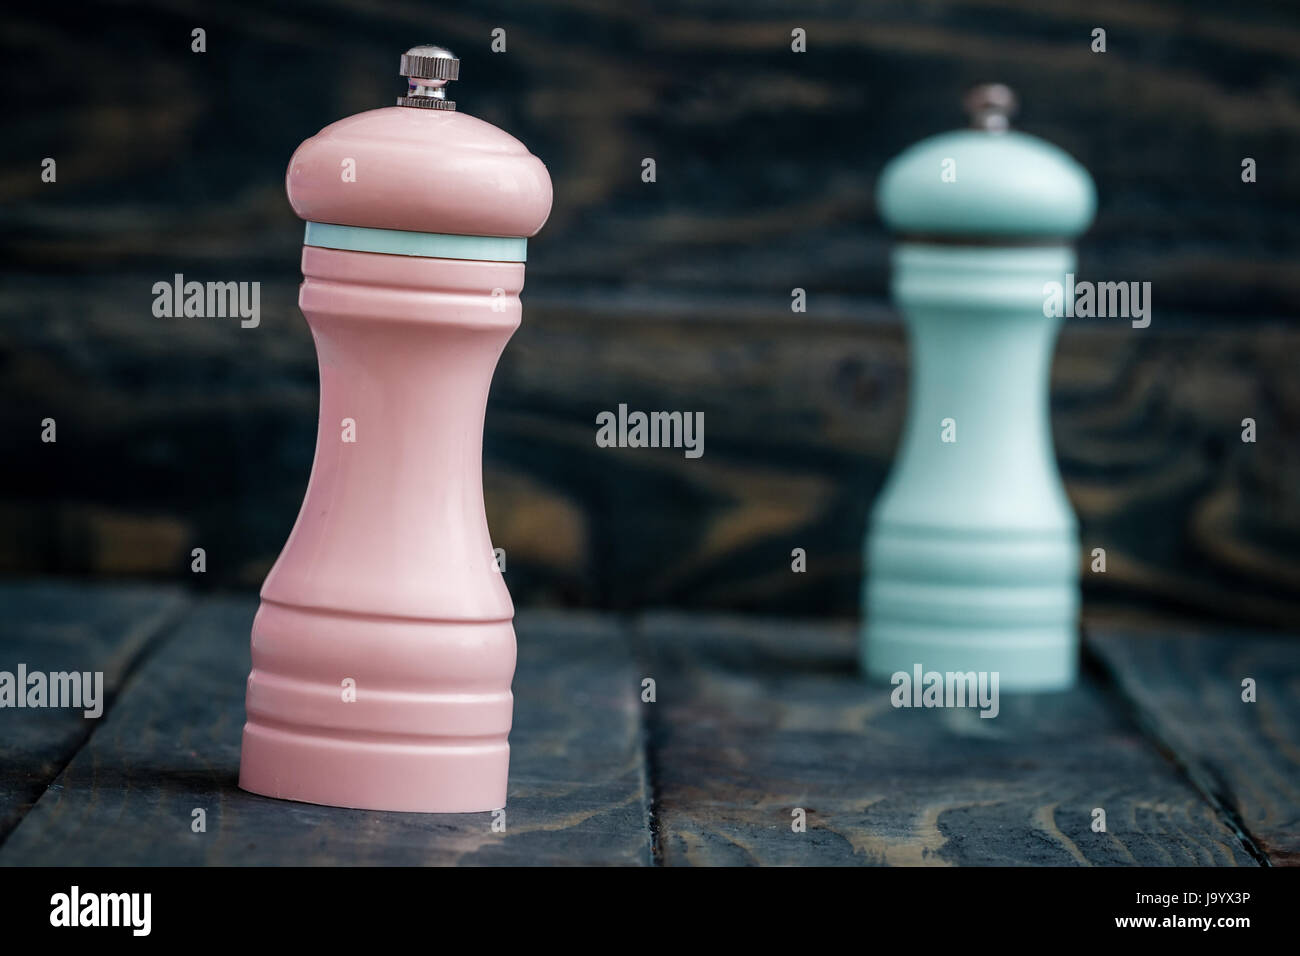 Pink and blue pepper mills on blue wooden background - Stock Image